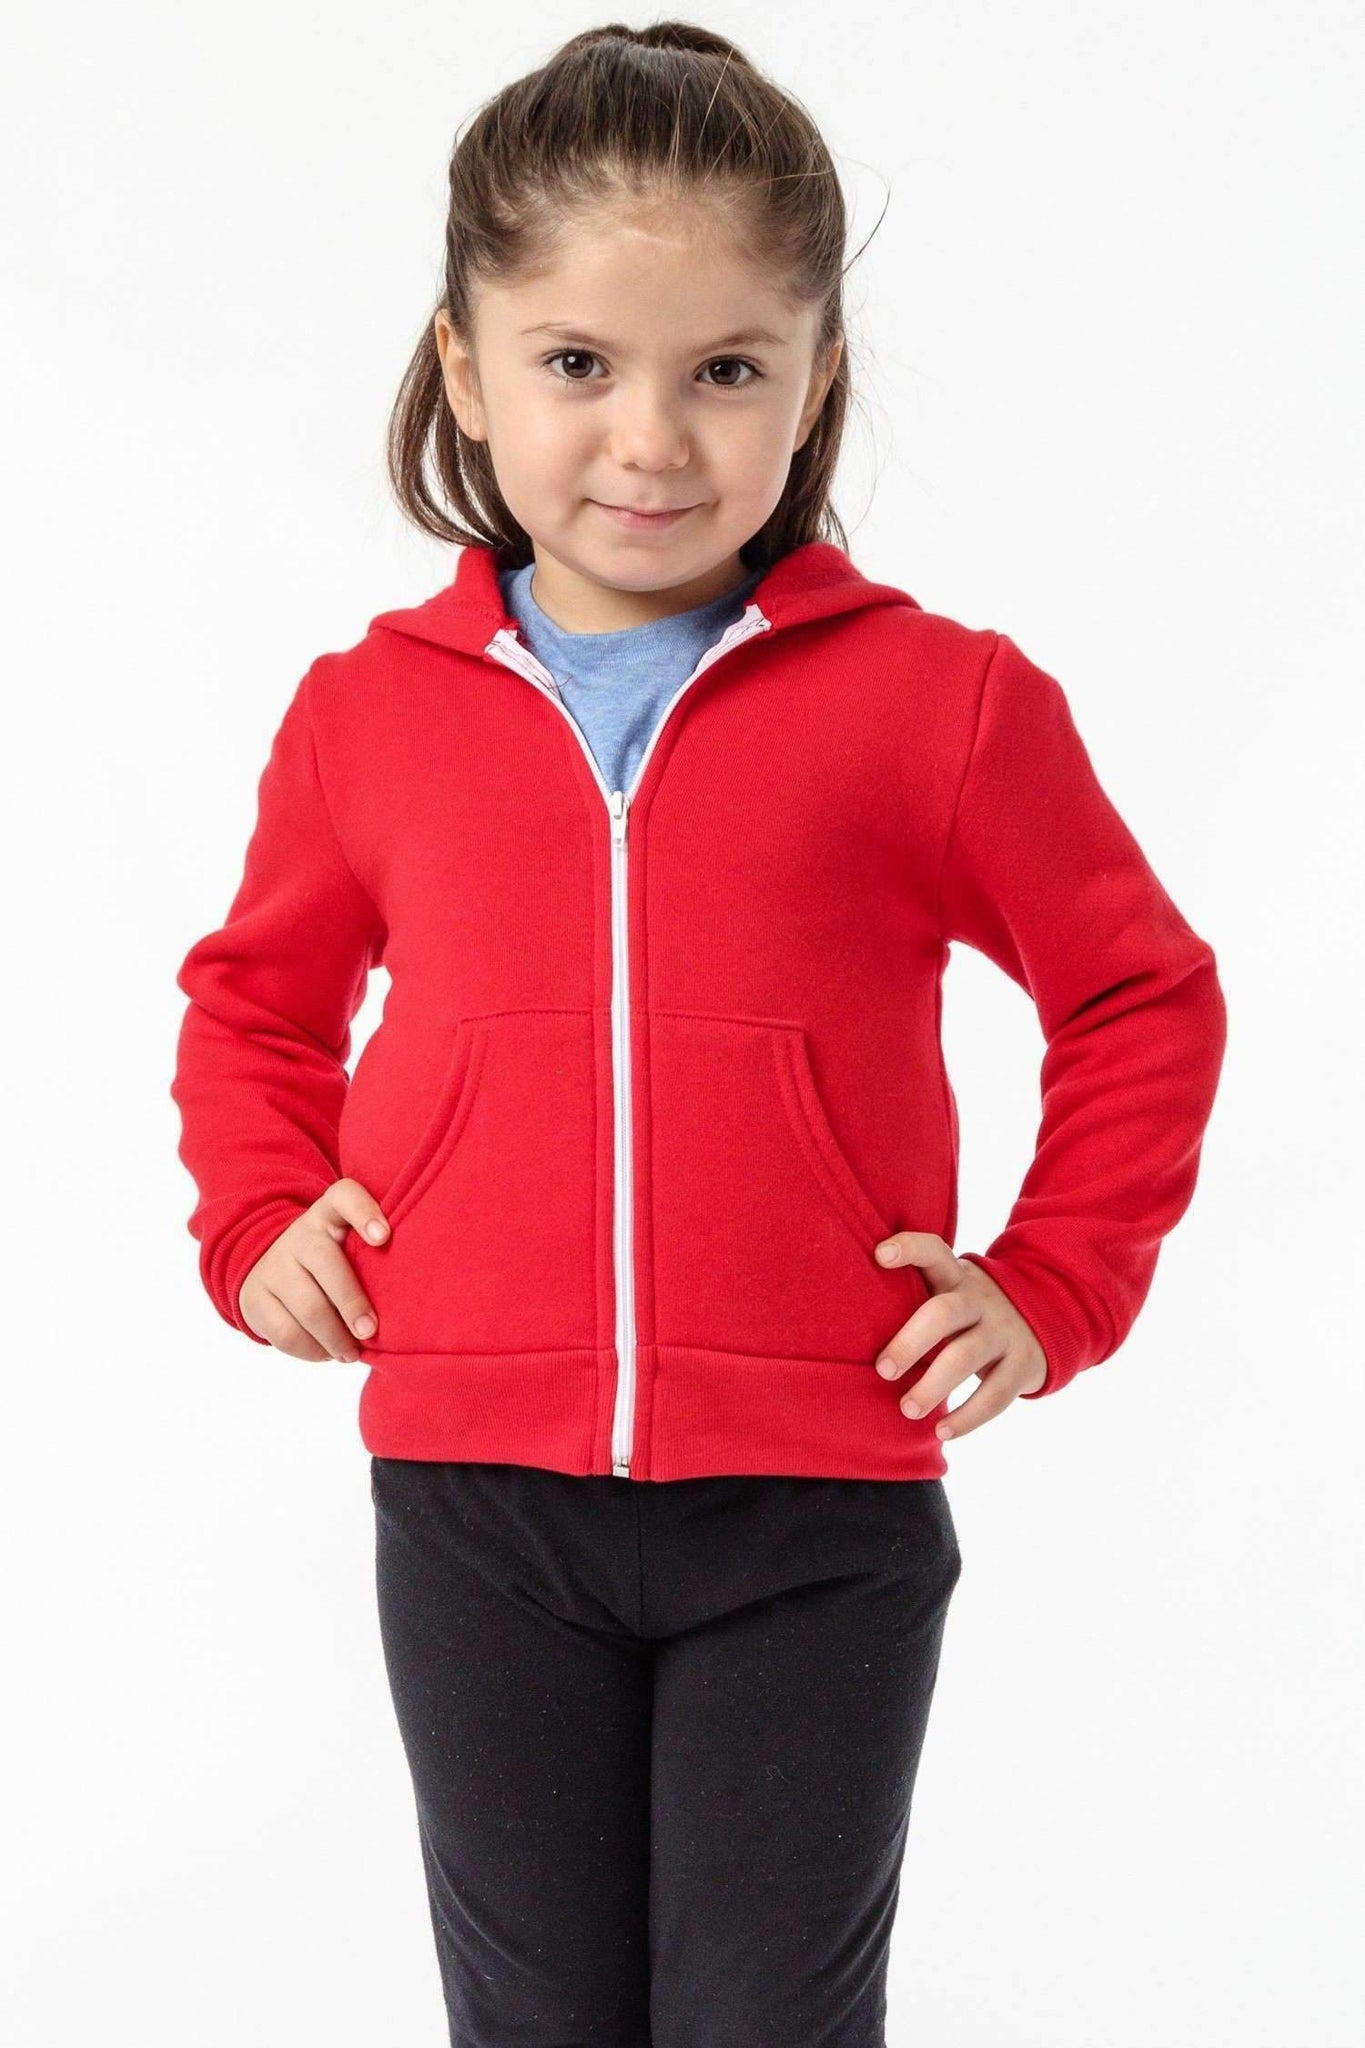 F1097 - Toddler Poly Cotton Zip Hoodie Kids Los Angeles Apparel Red 2